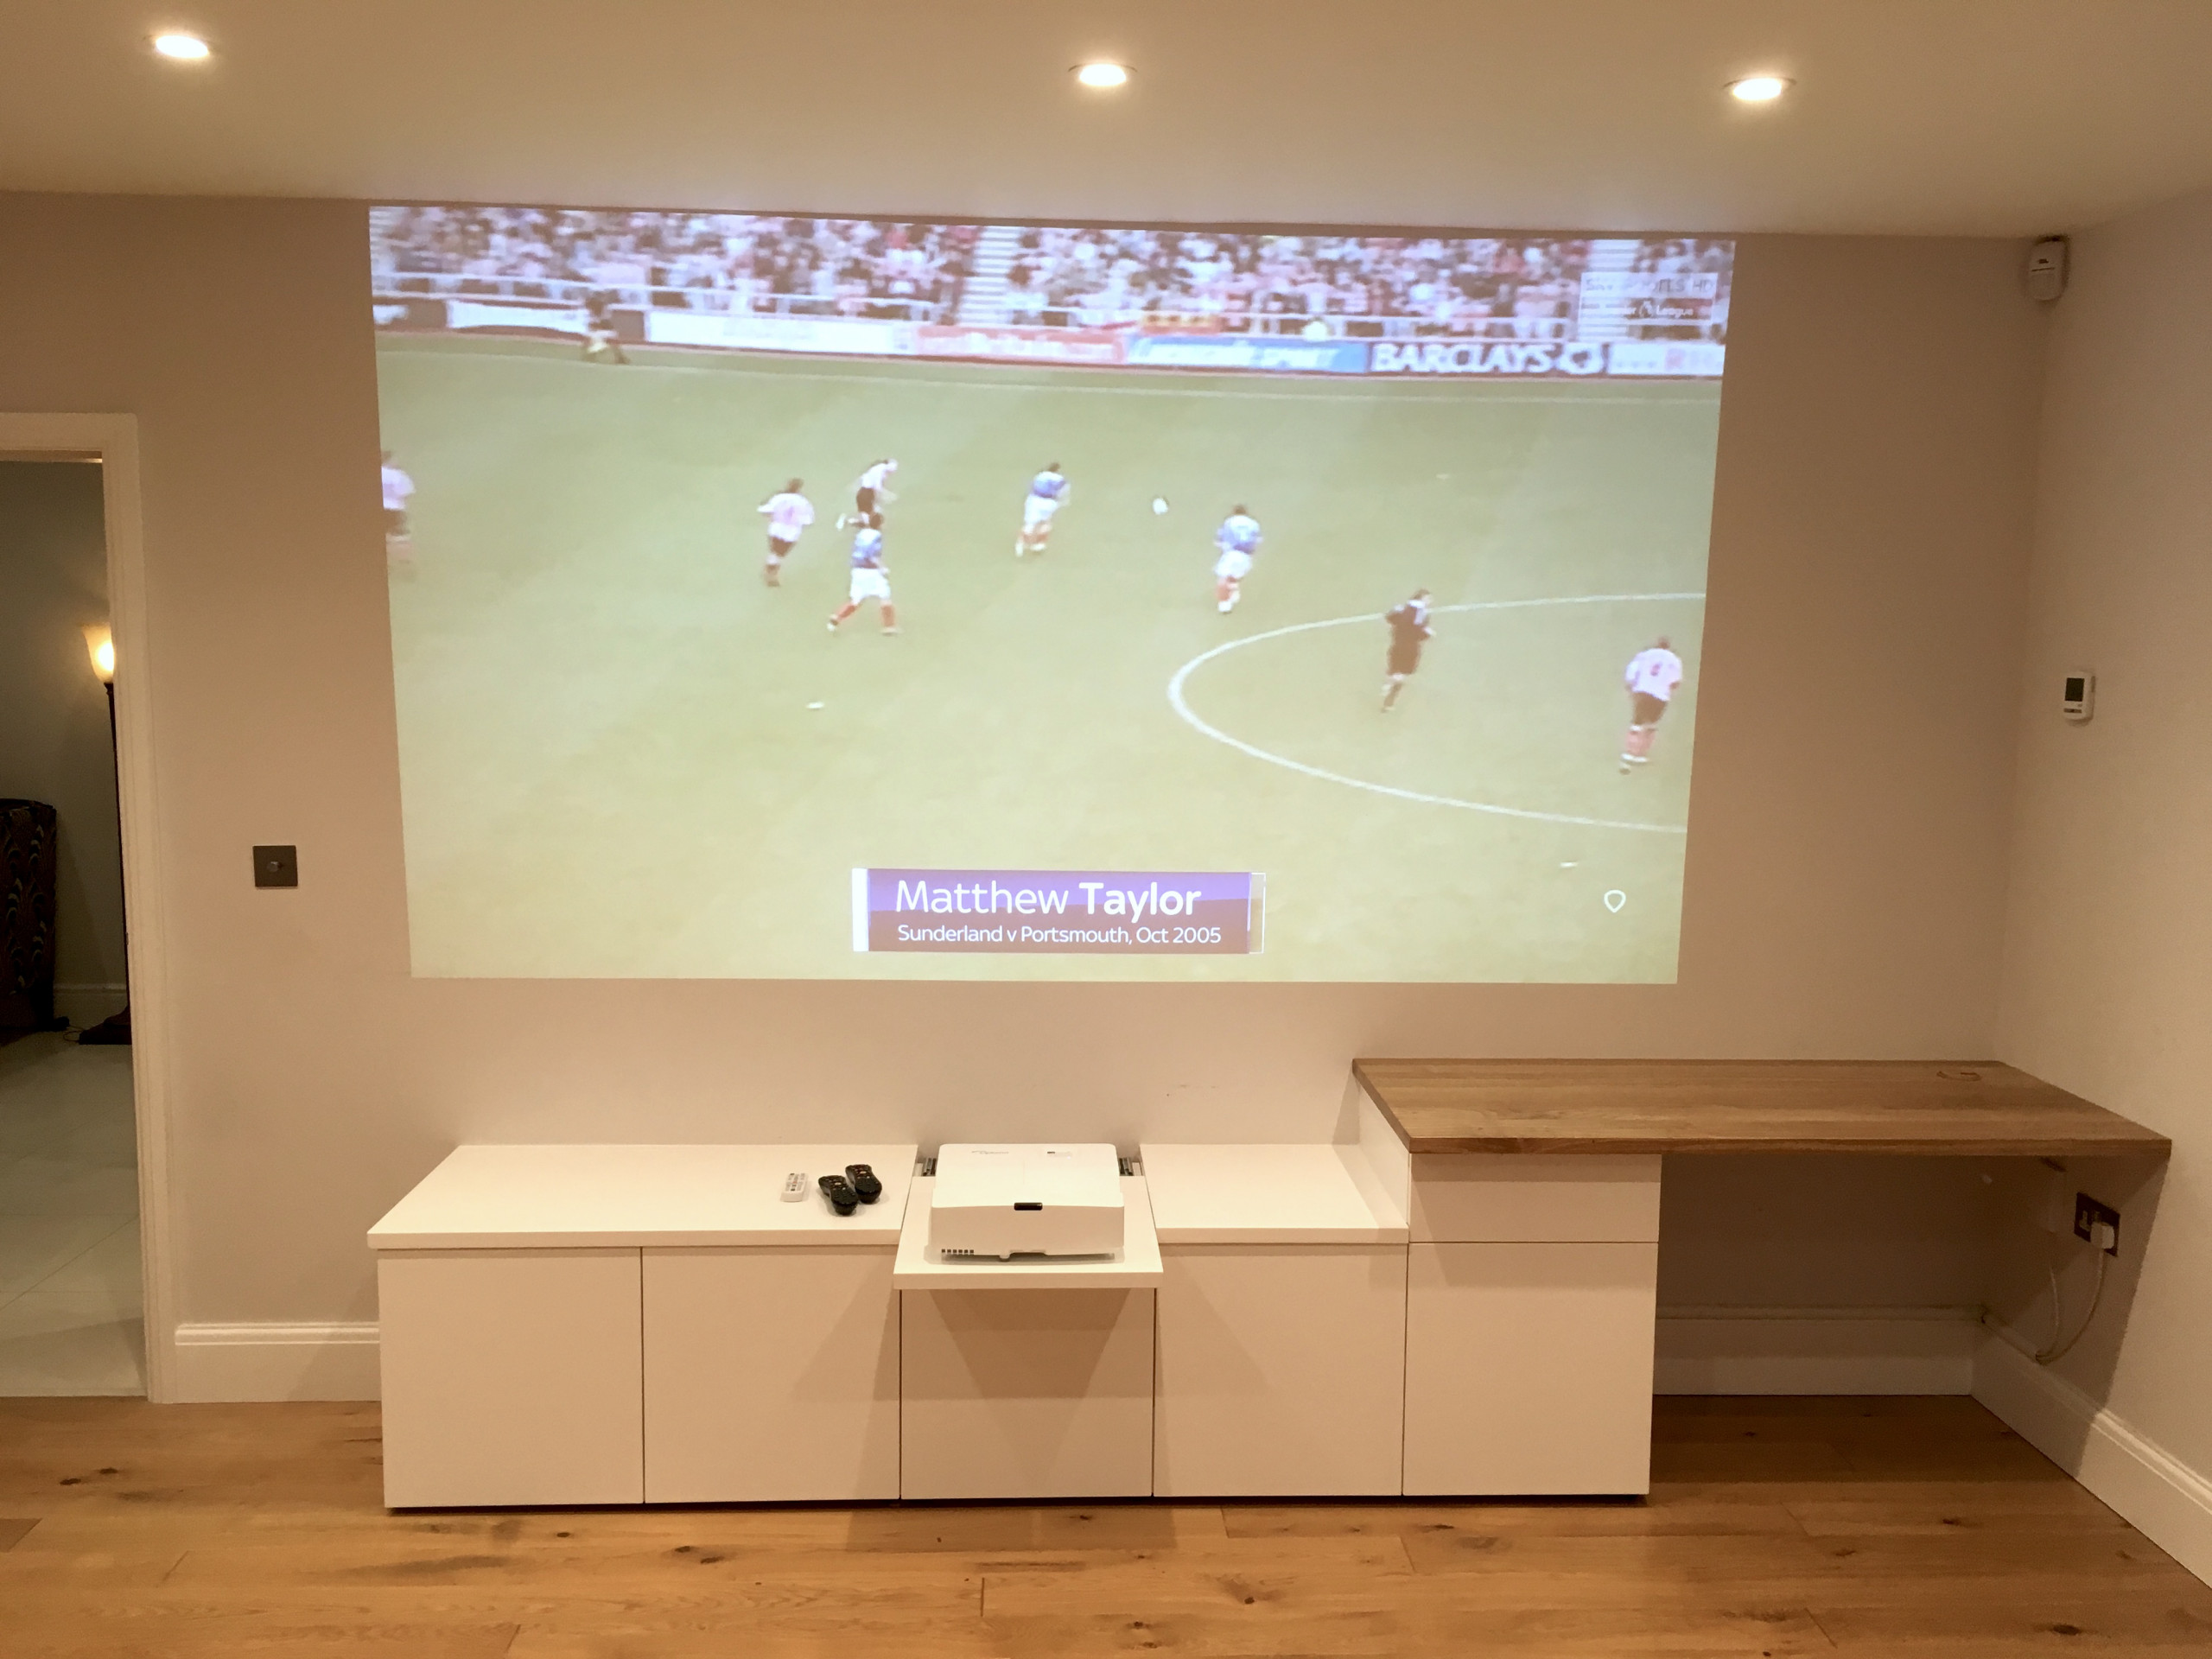 Minimalist Storage Unit with Projector and Desk